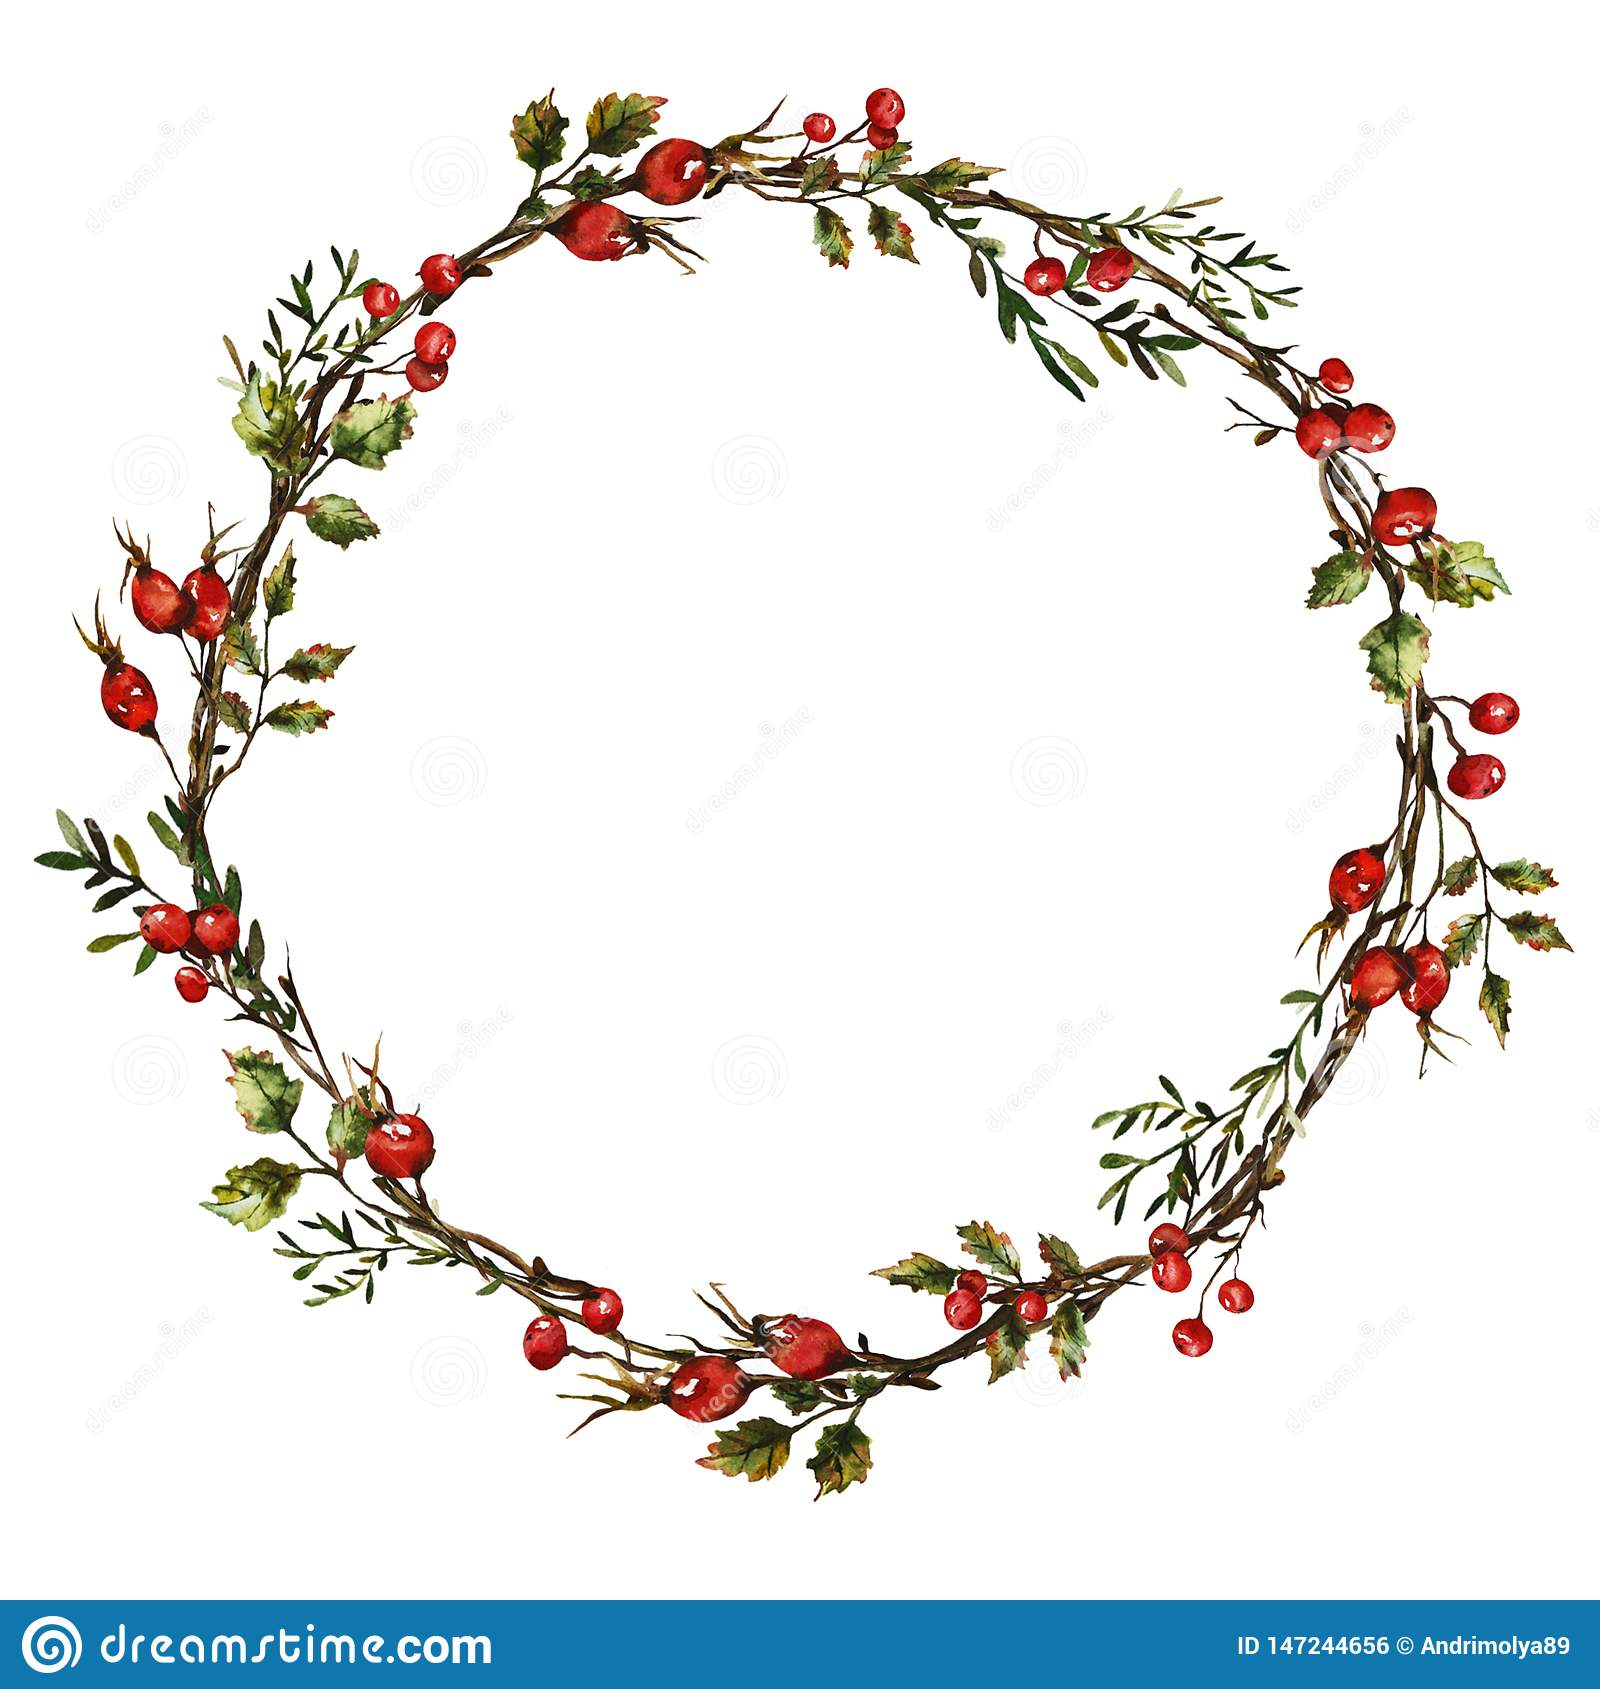 Wreath with rose hips